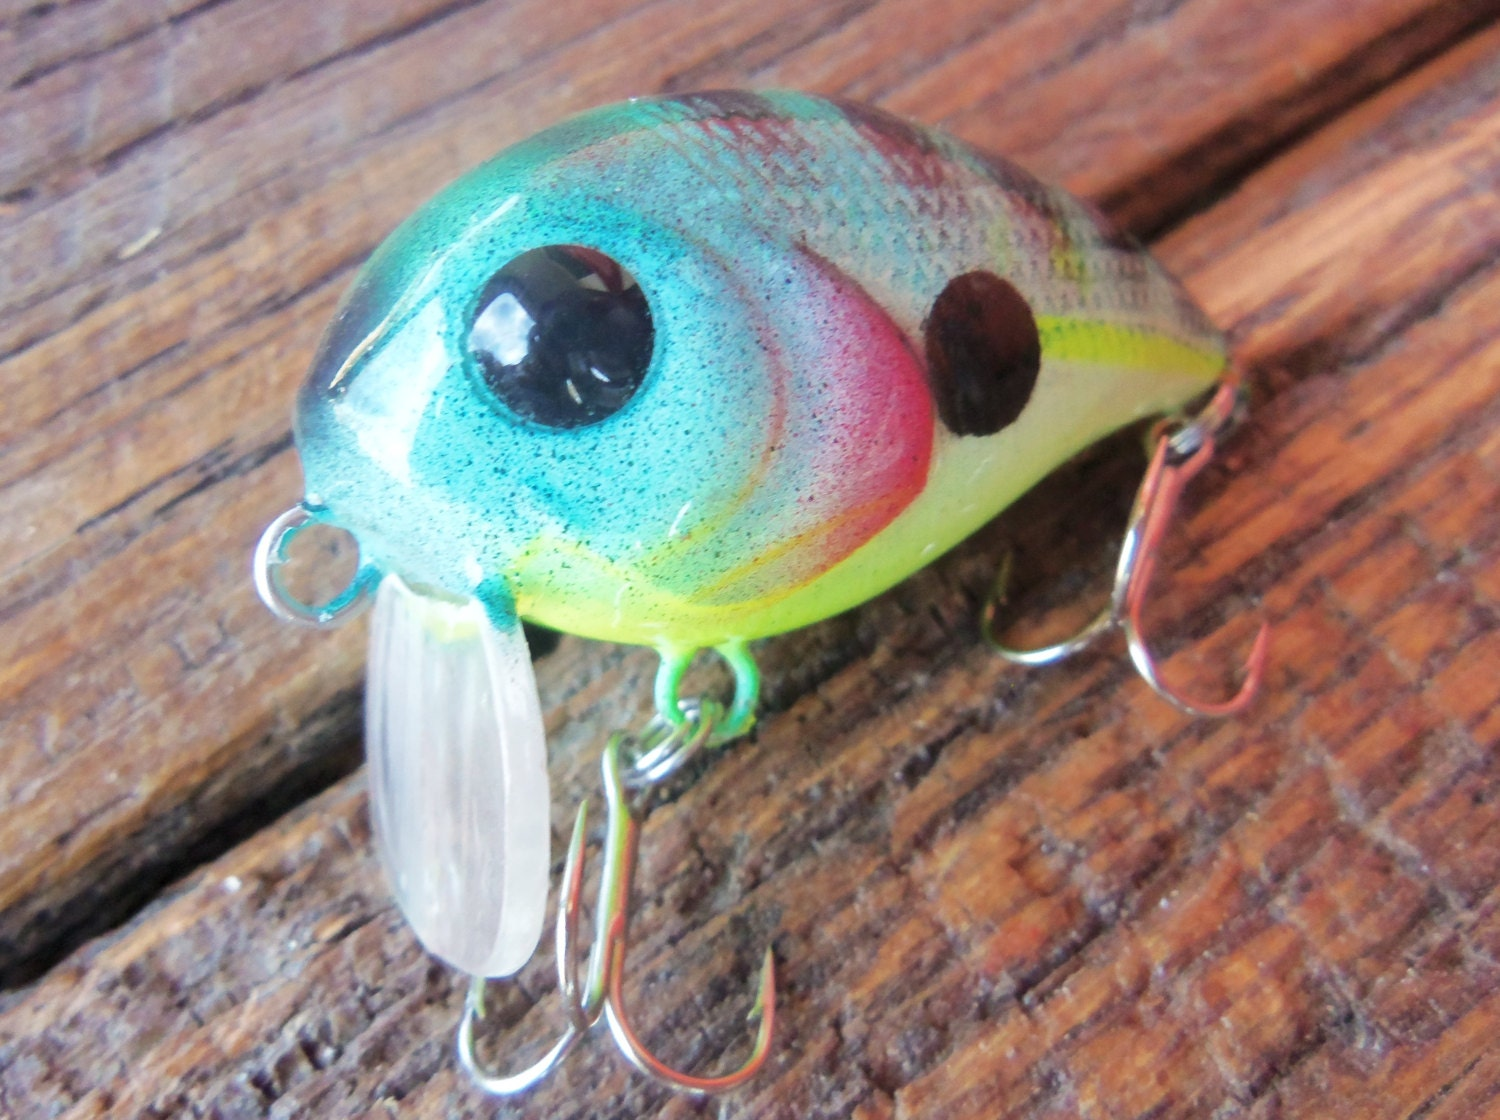 Custom fishing lure fishing hook crank bait gift for fisherman for Personalized fishing lures